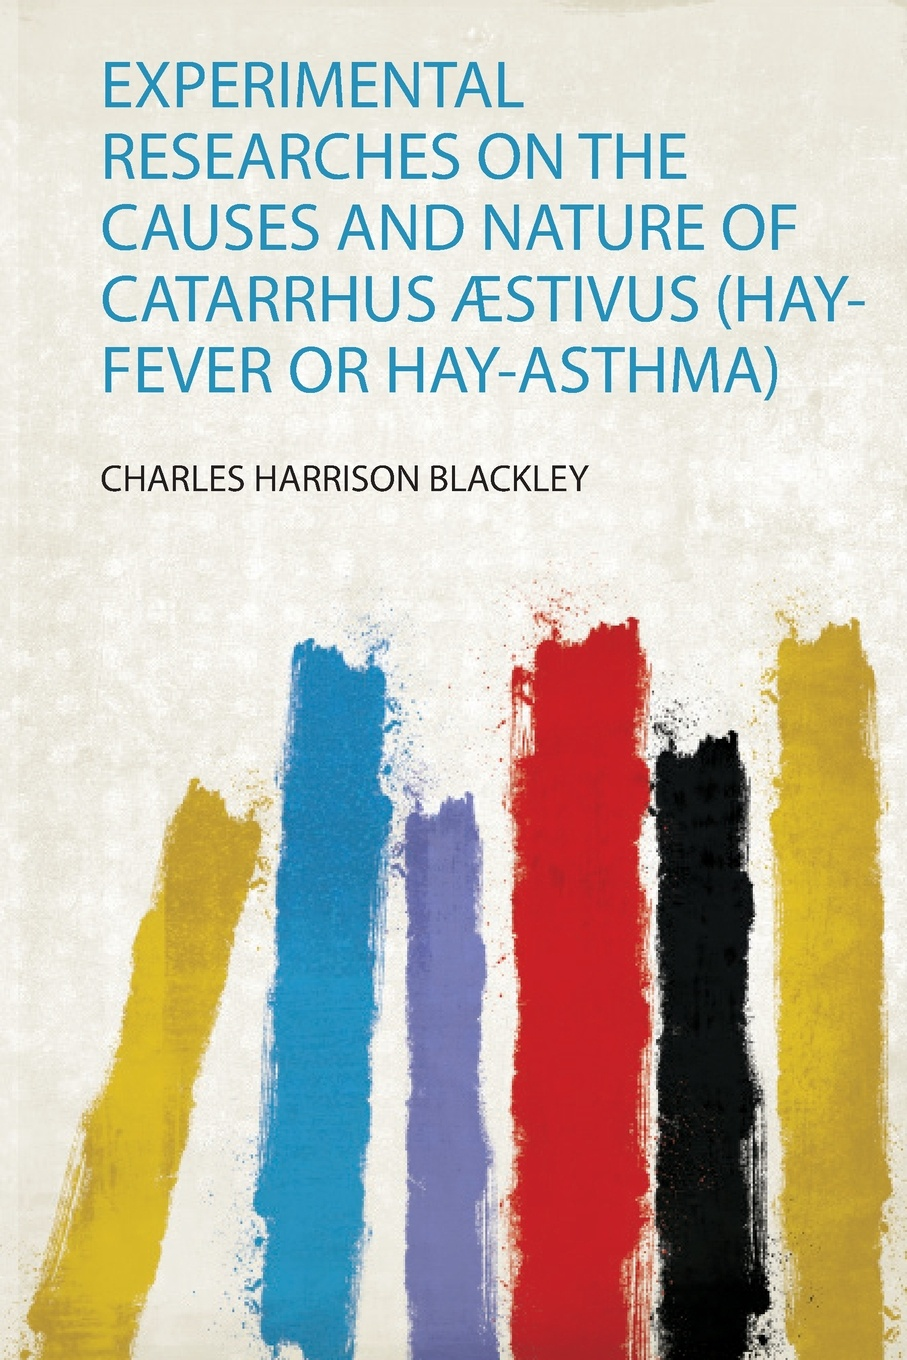 Experimental Researches on the Causes and Nature of Catarrhus AEstivus (Hay-Fever or Hay-Asthma)